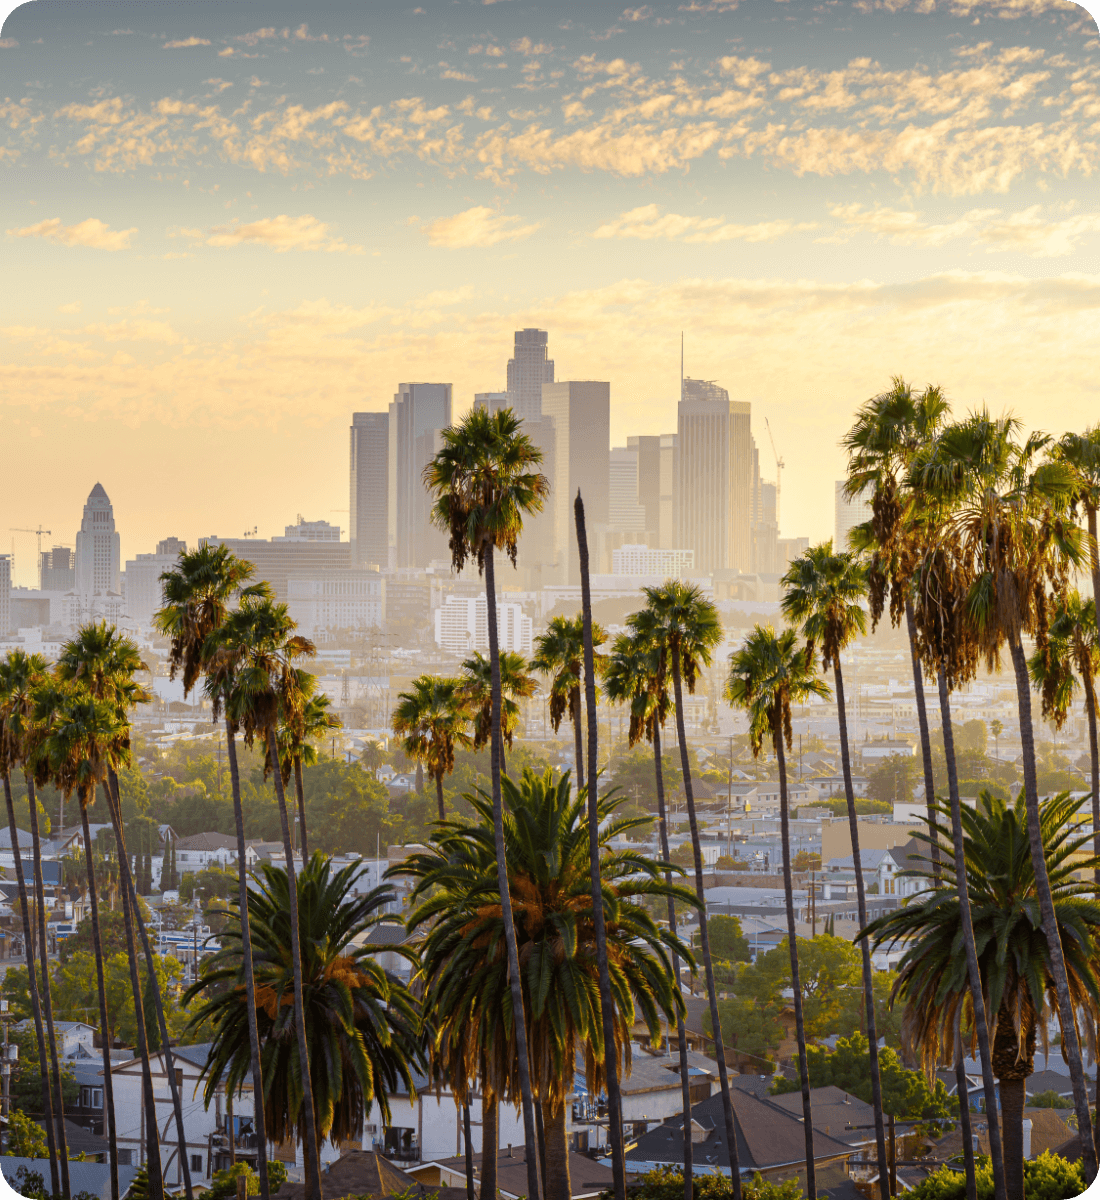 Los Angeles skyline with palm trees